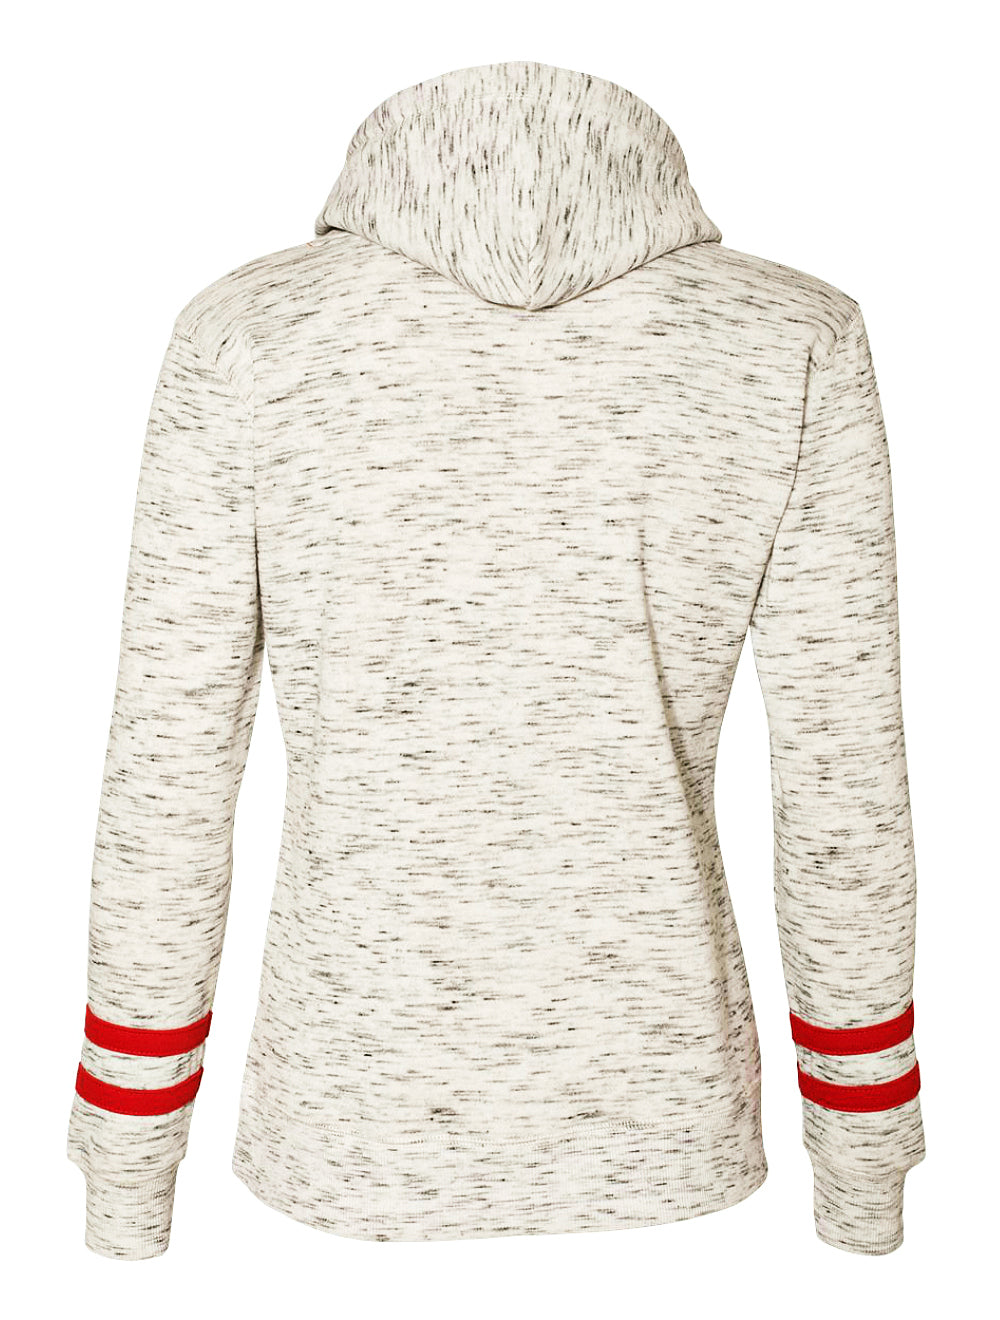 Equestrian Heather Grey Hoodie Sweatshirt with Red Stripes by Equestrianista.